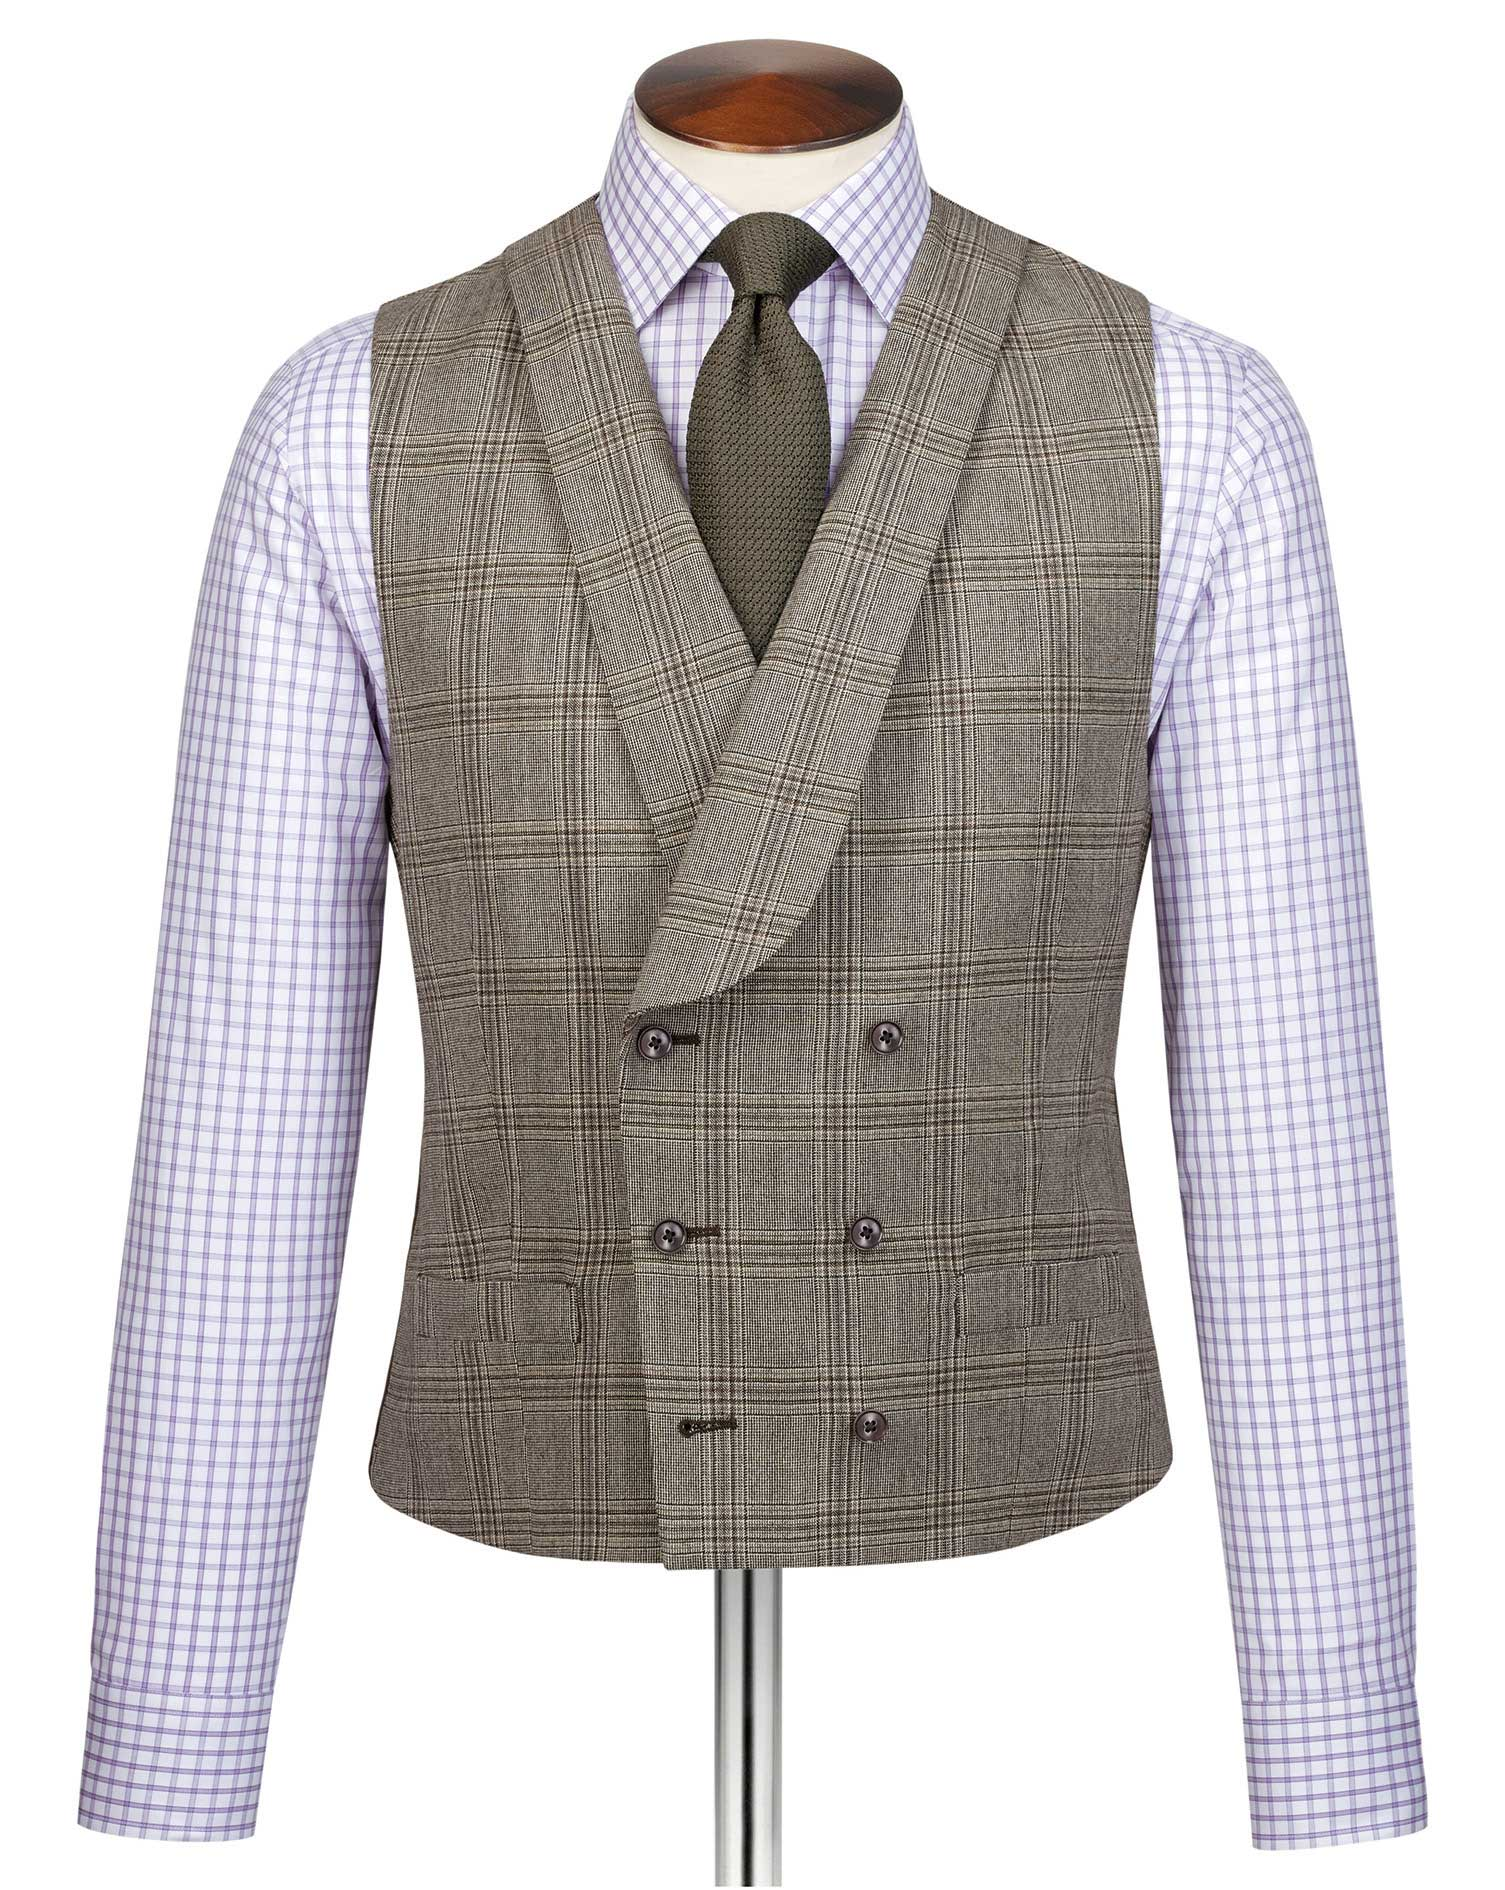 Grey adjustable fit British serge luxury suit waistcoat